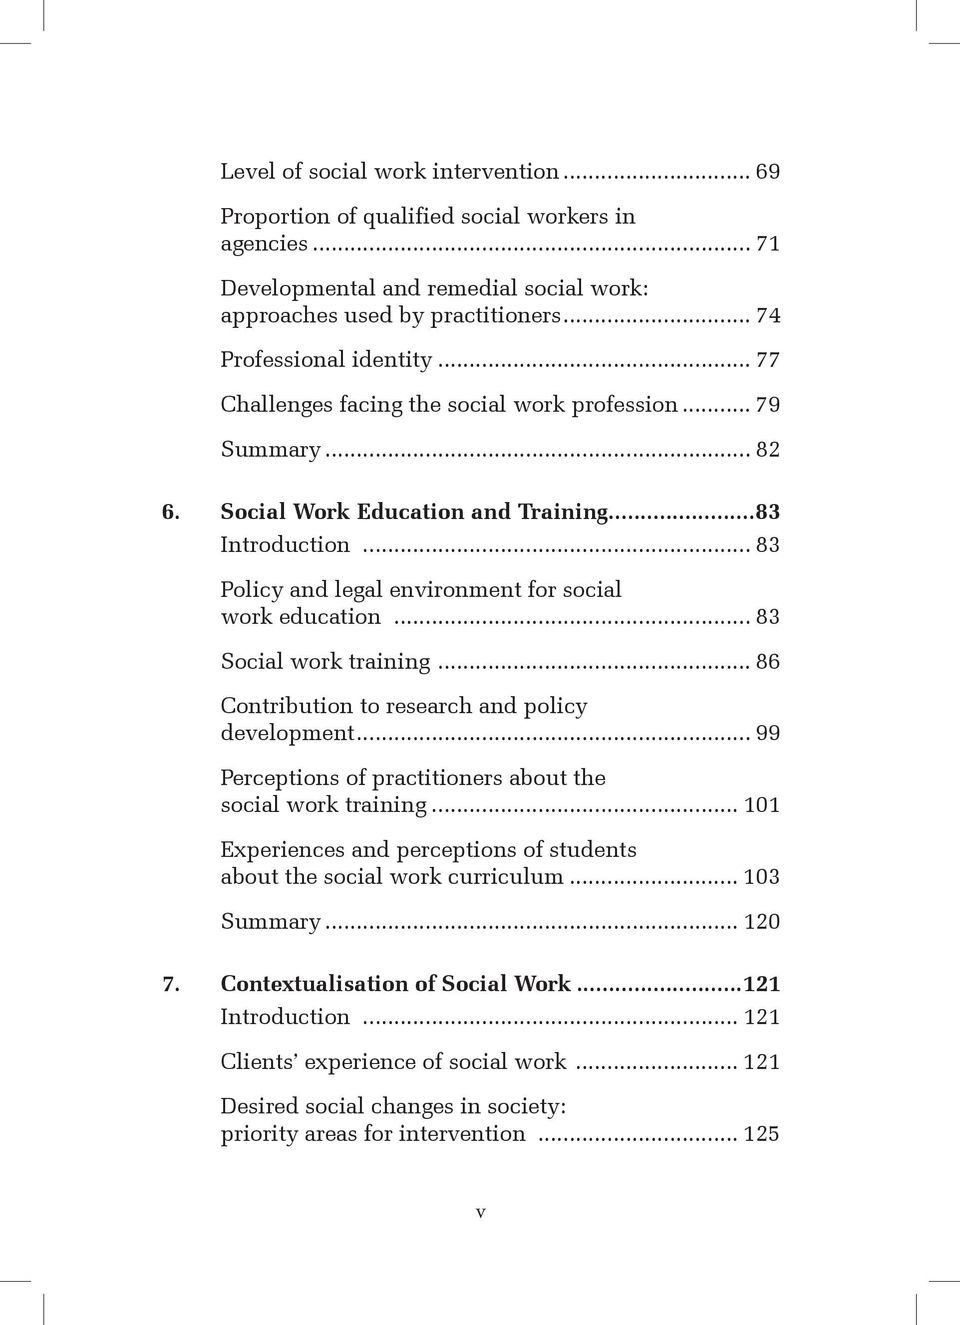 .. 83 Social work training... 86 Contribution to research and policy development... 99 Perceptions of practitioners about the social work training.